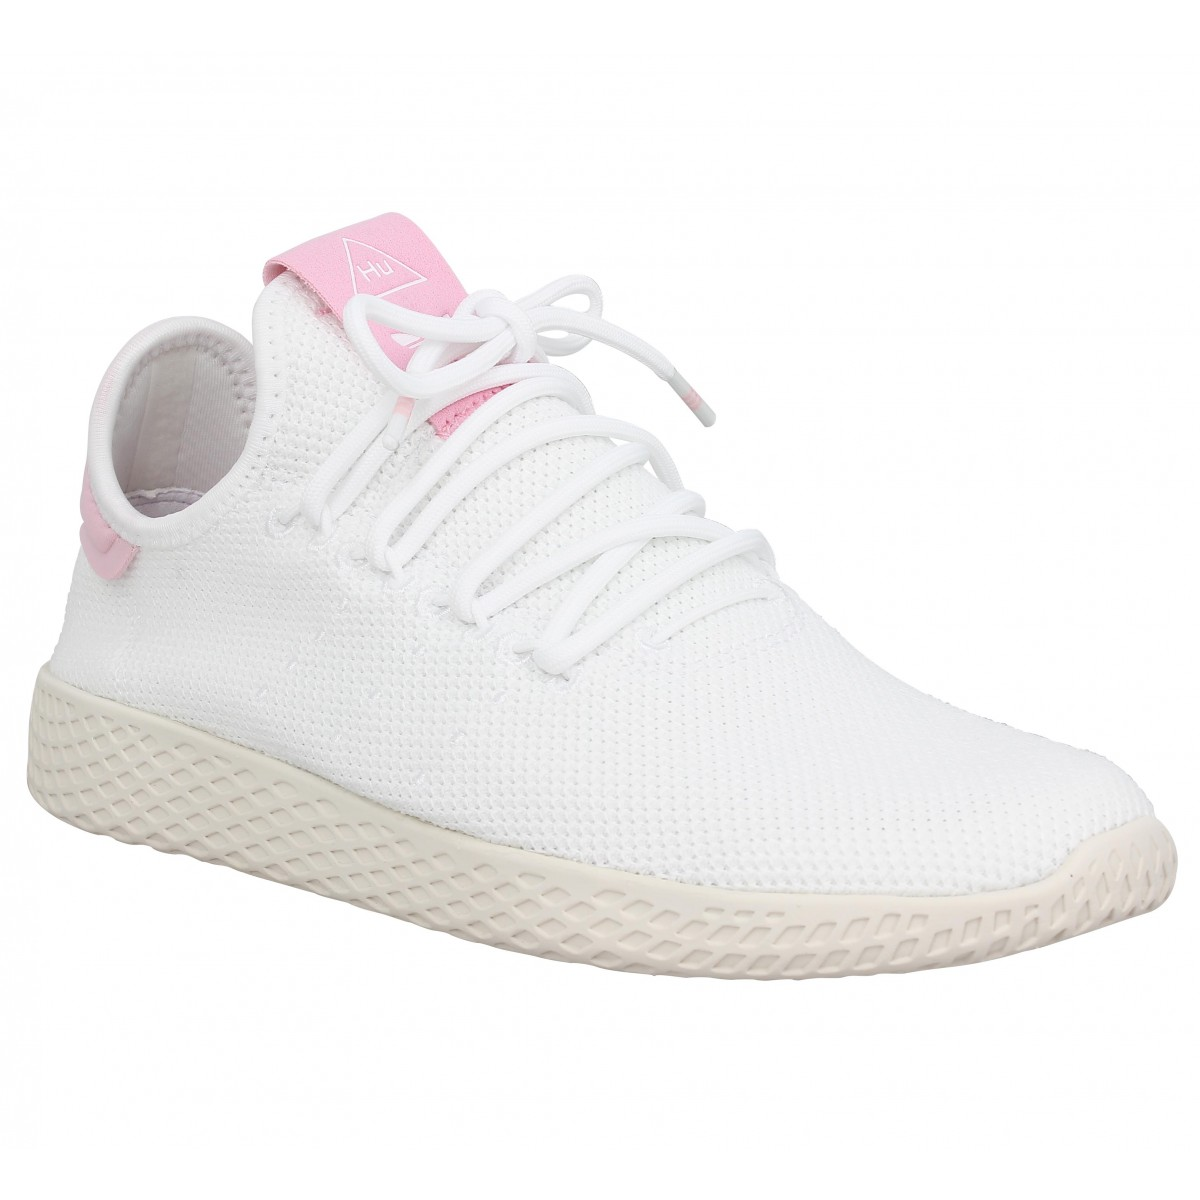 ADIDAS X PHARRELL WILLIAMS PW Tennis mesh Femme Blanc Rose